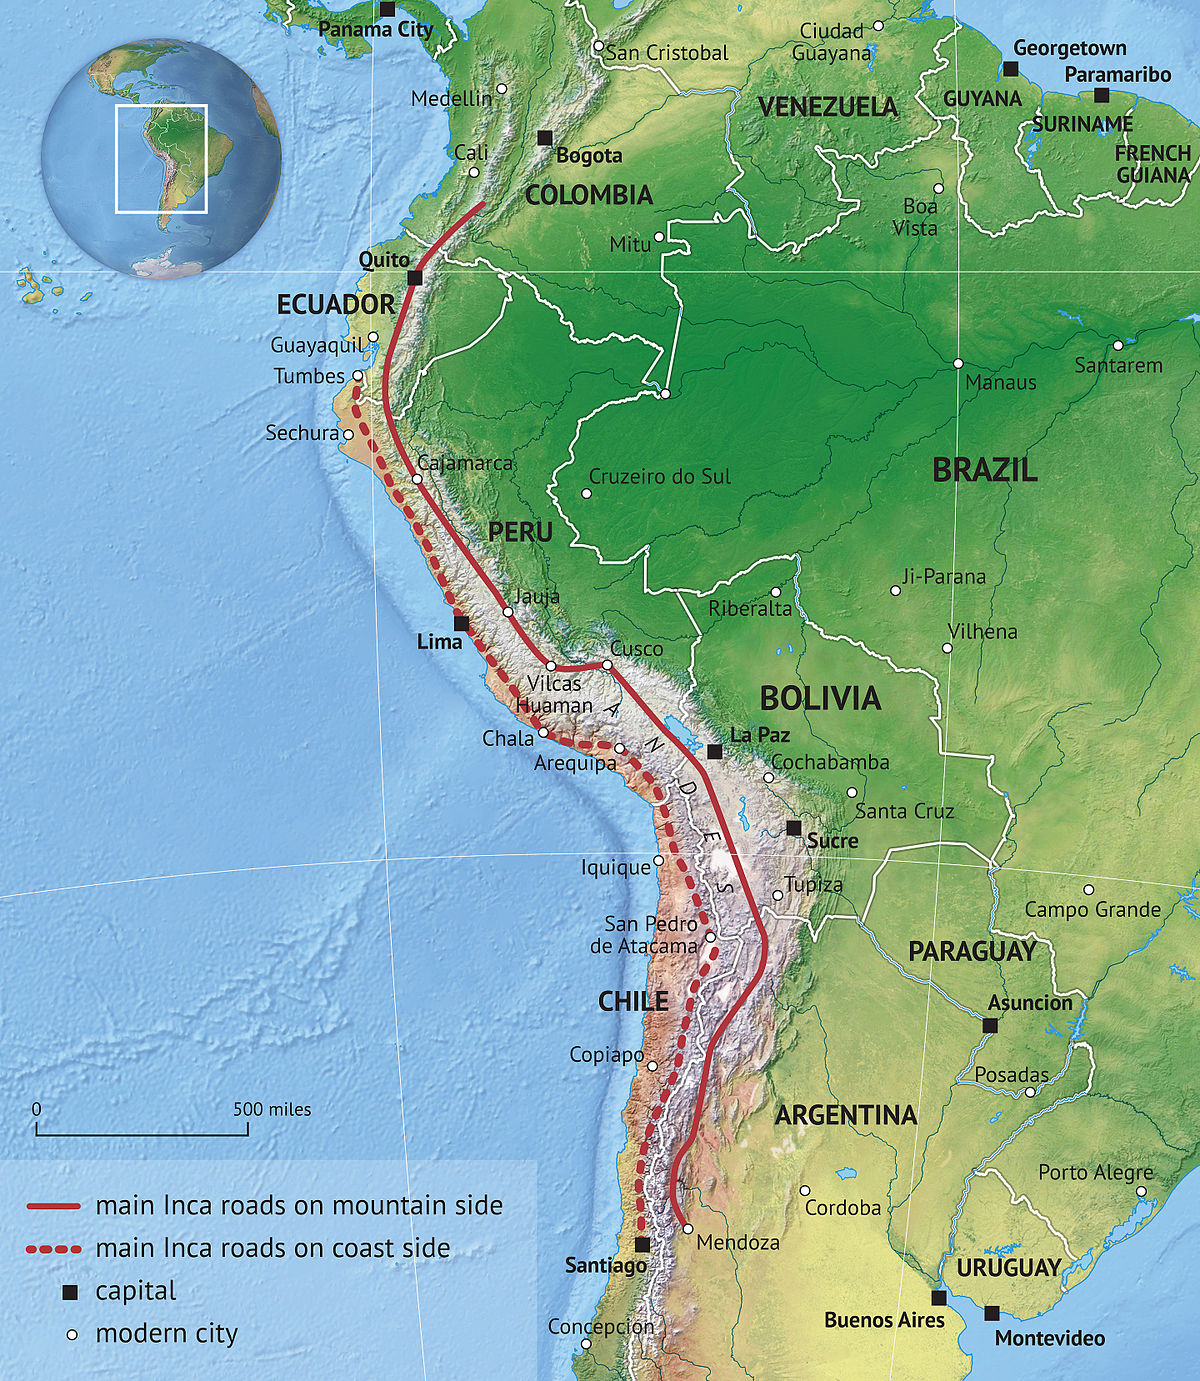 Inca Road System Wikipedia - Road map of peru